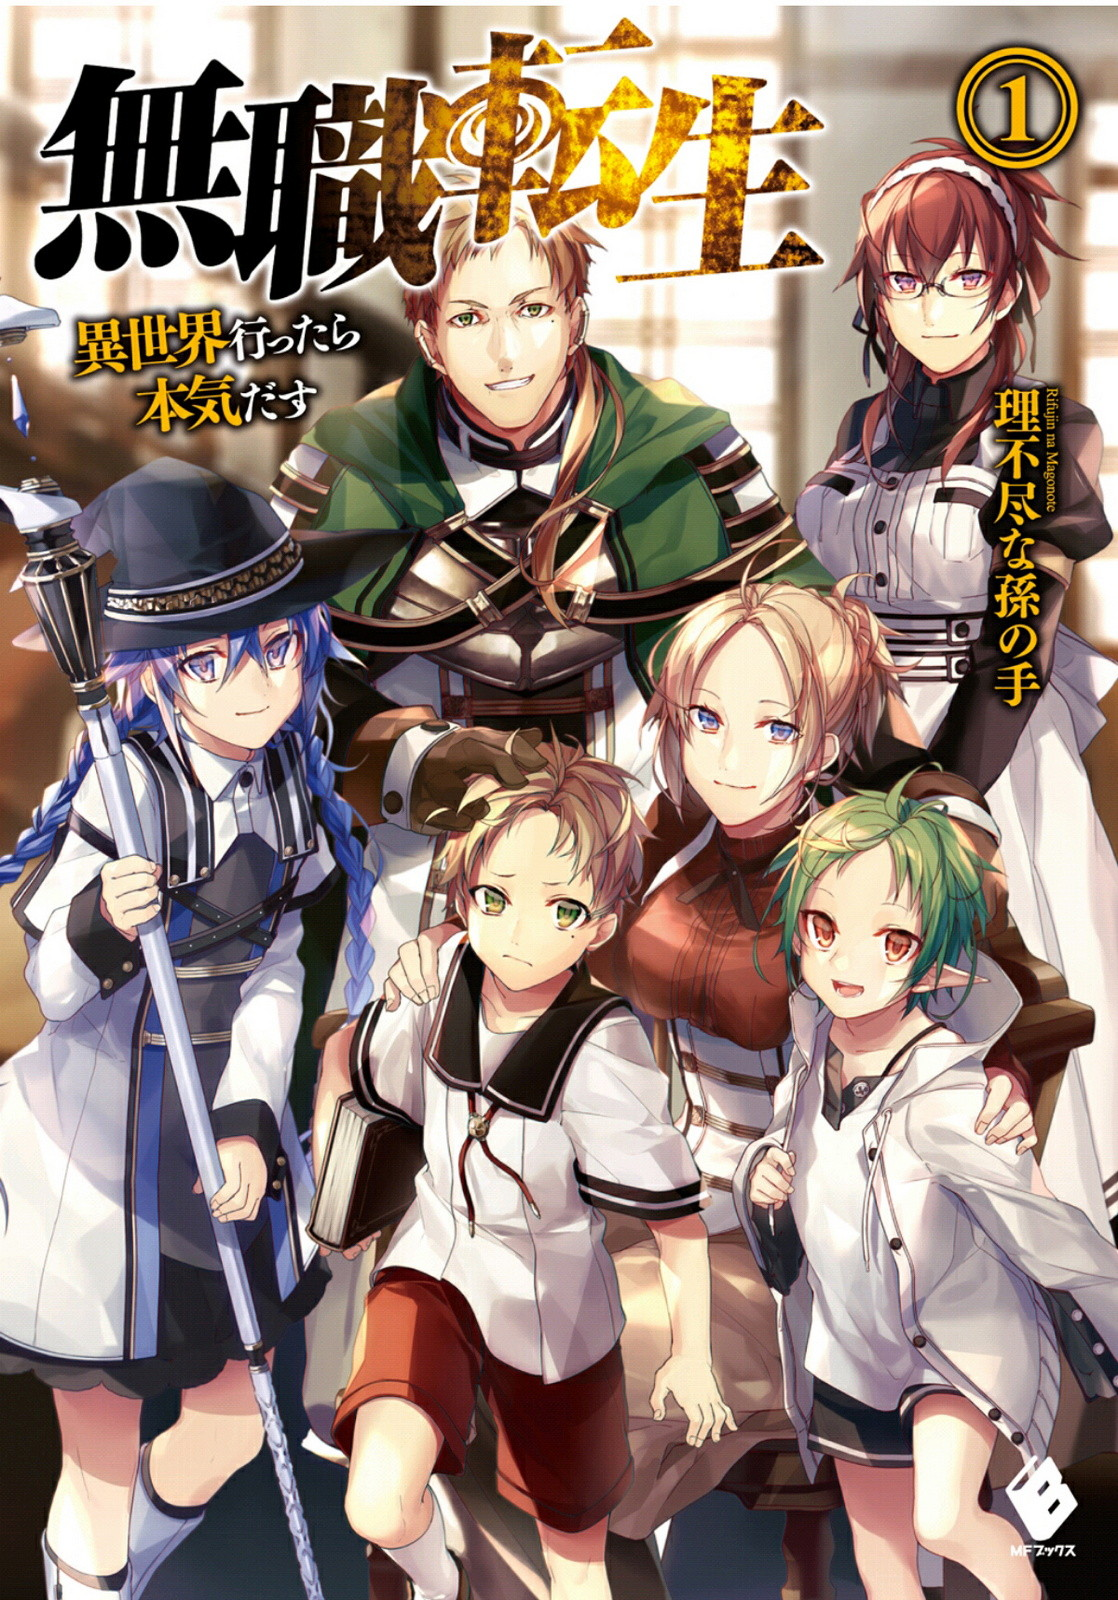 Mushoku Tensei Light Novel Epub